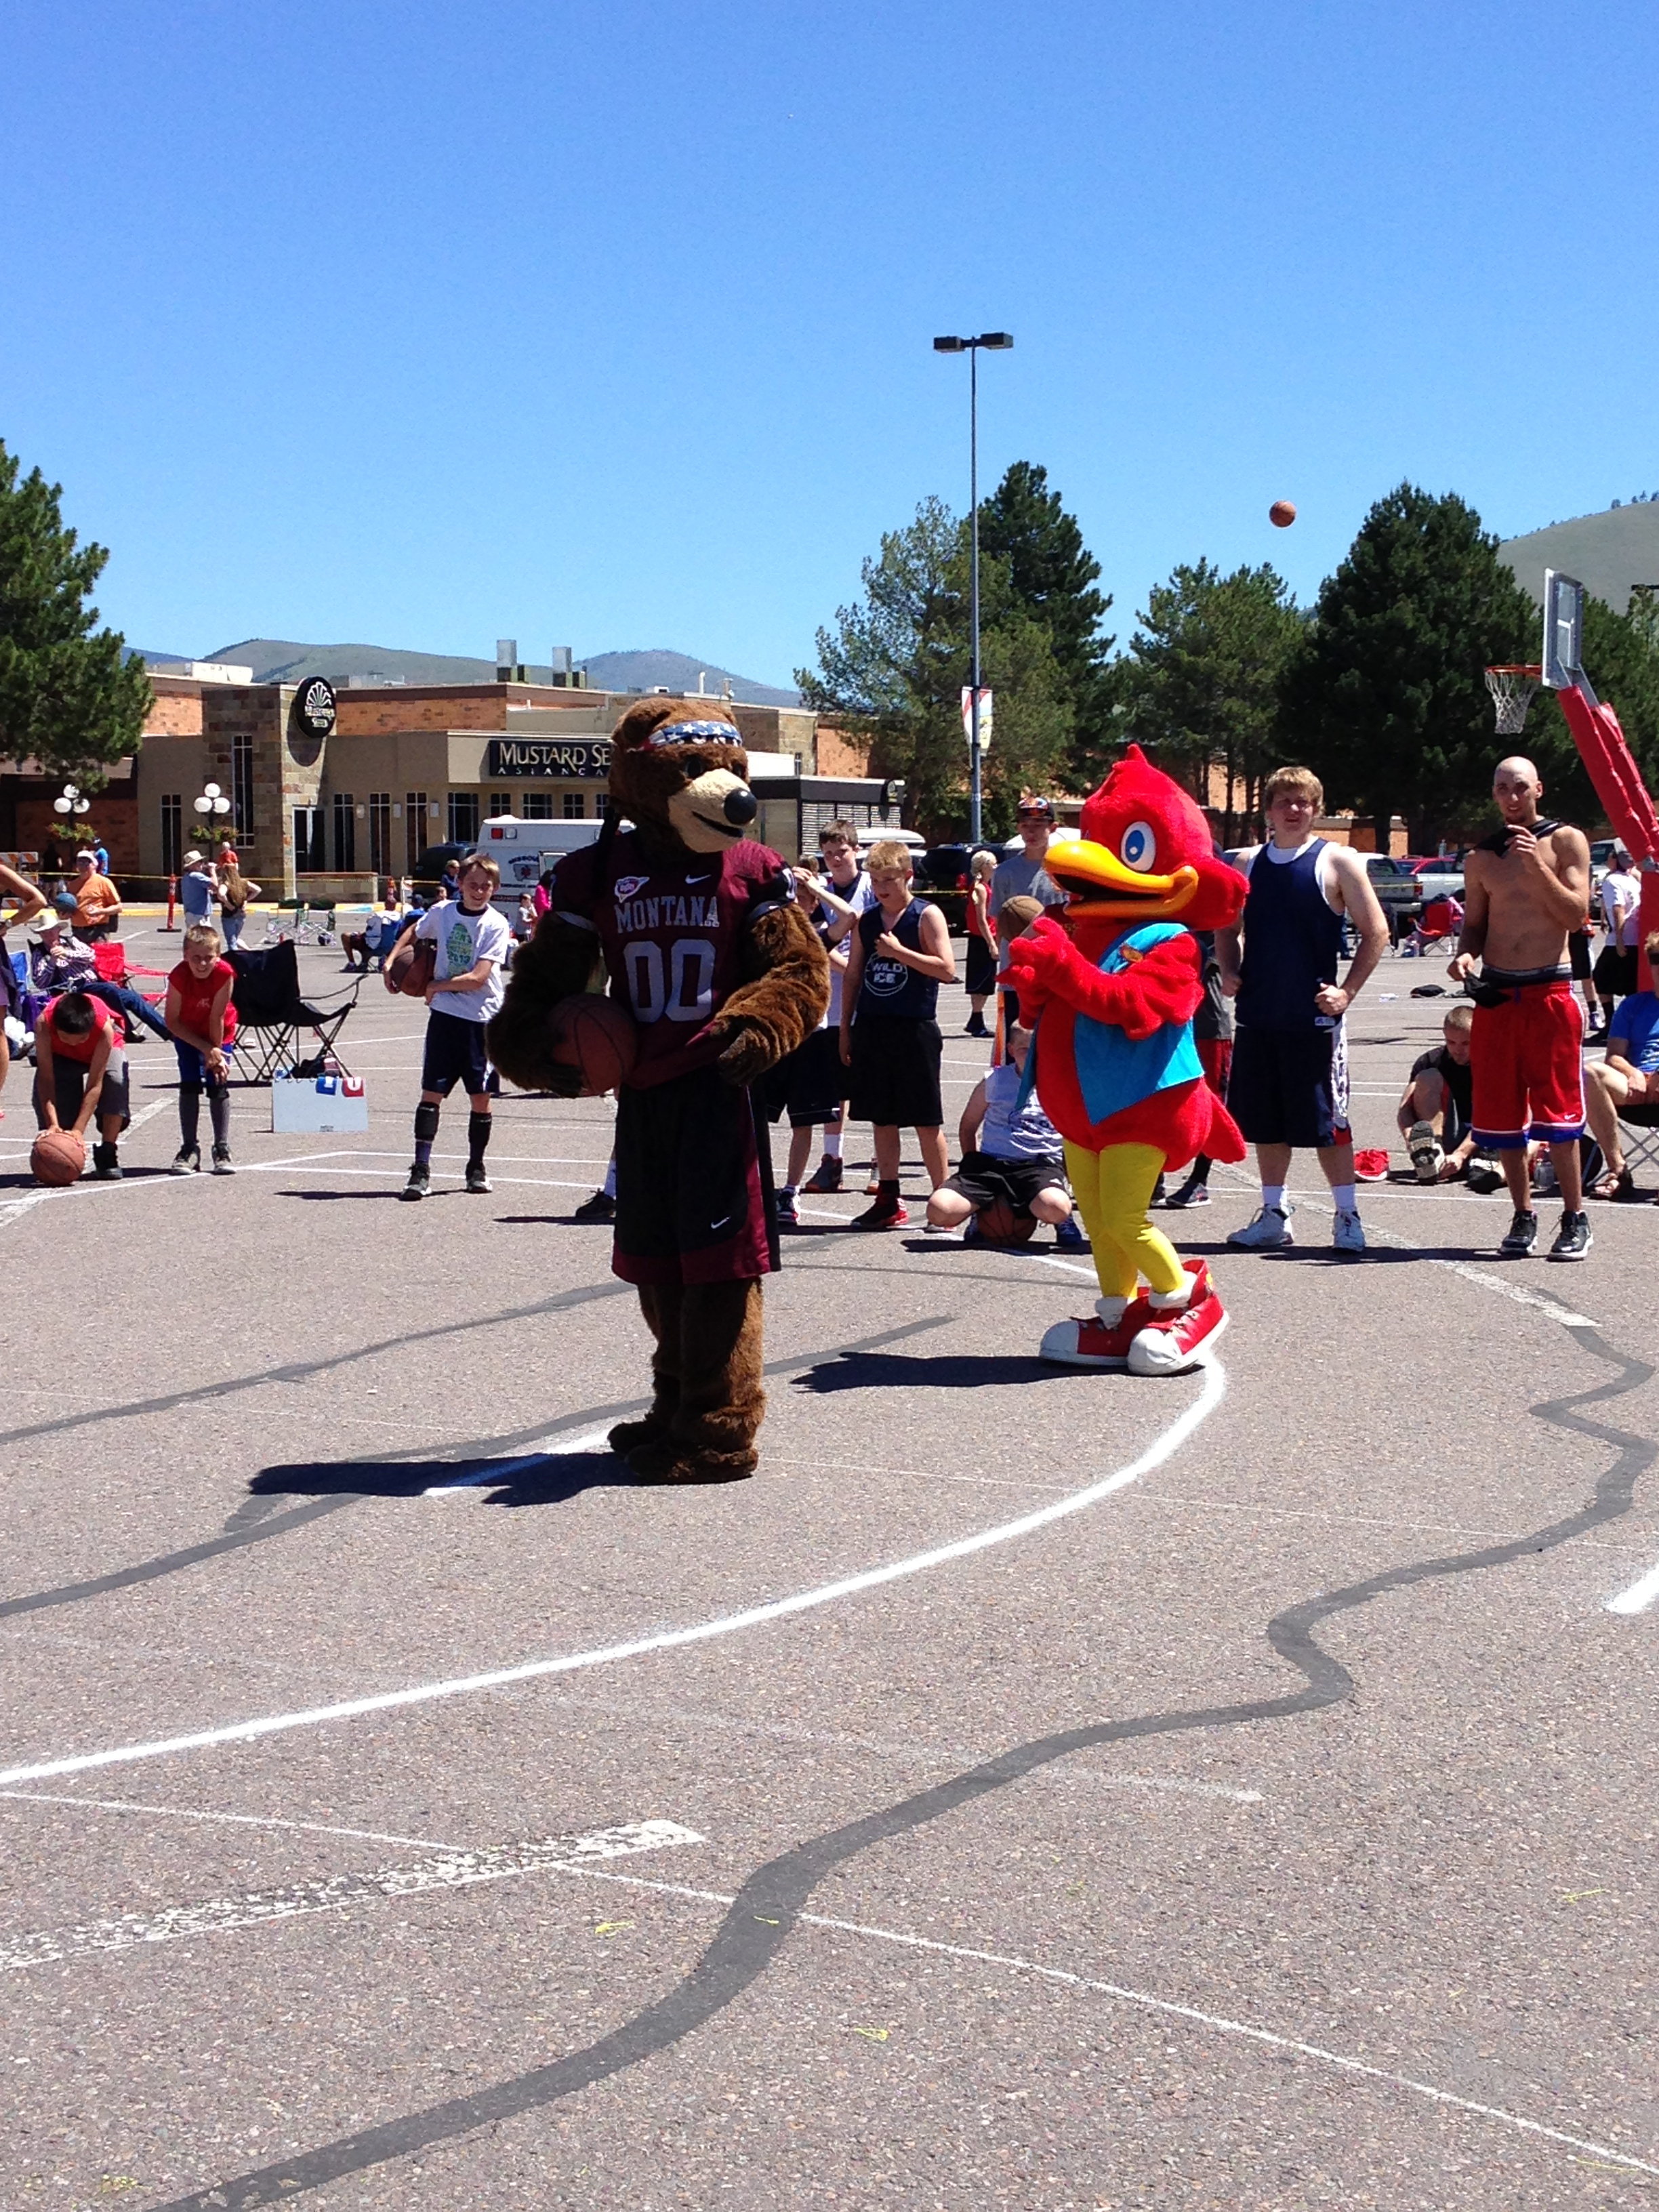 Monte interacting with the Red Robin mascot.